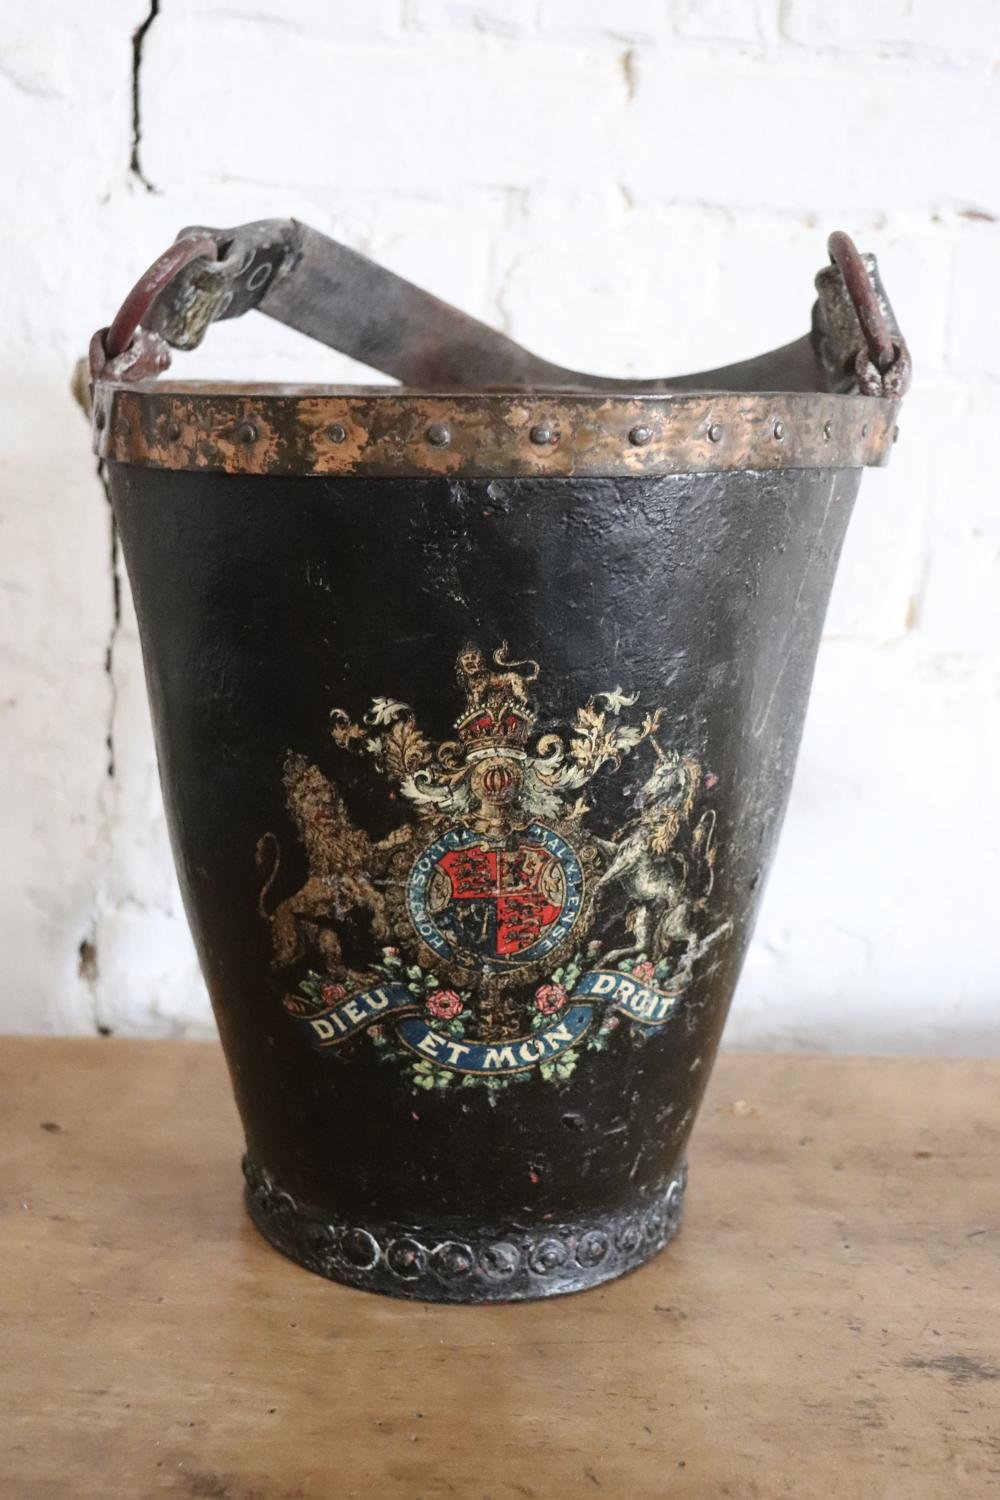 19th century fire bucket with crest